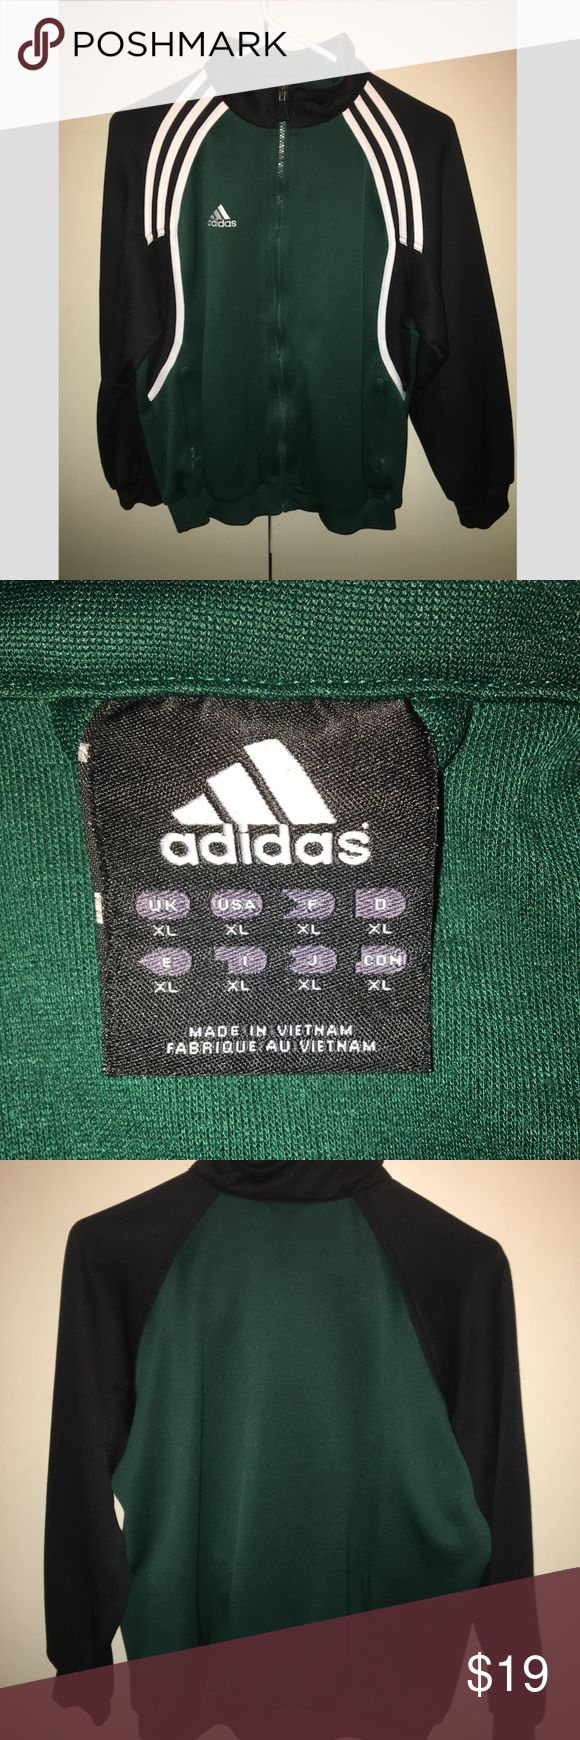 Adidas Zip-Up Warm Up Hoodie This is a dark green Adidas zippered hoodie in size kids XL. It is in great condition. While the size says XL Boy, it is a gender neutral hoodie. The pockets also zip-up. adidas Jackets & Coats